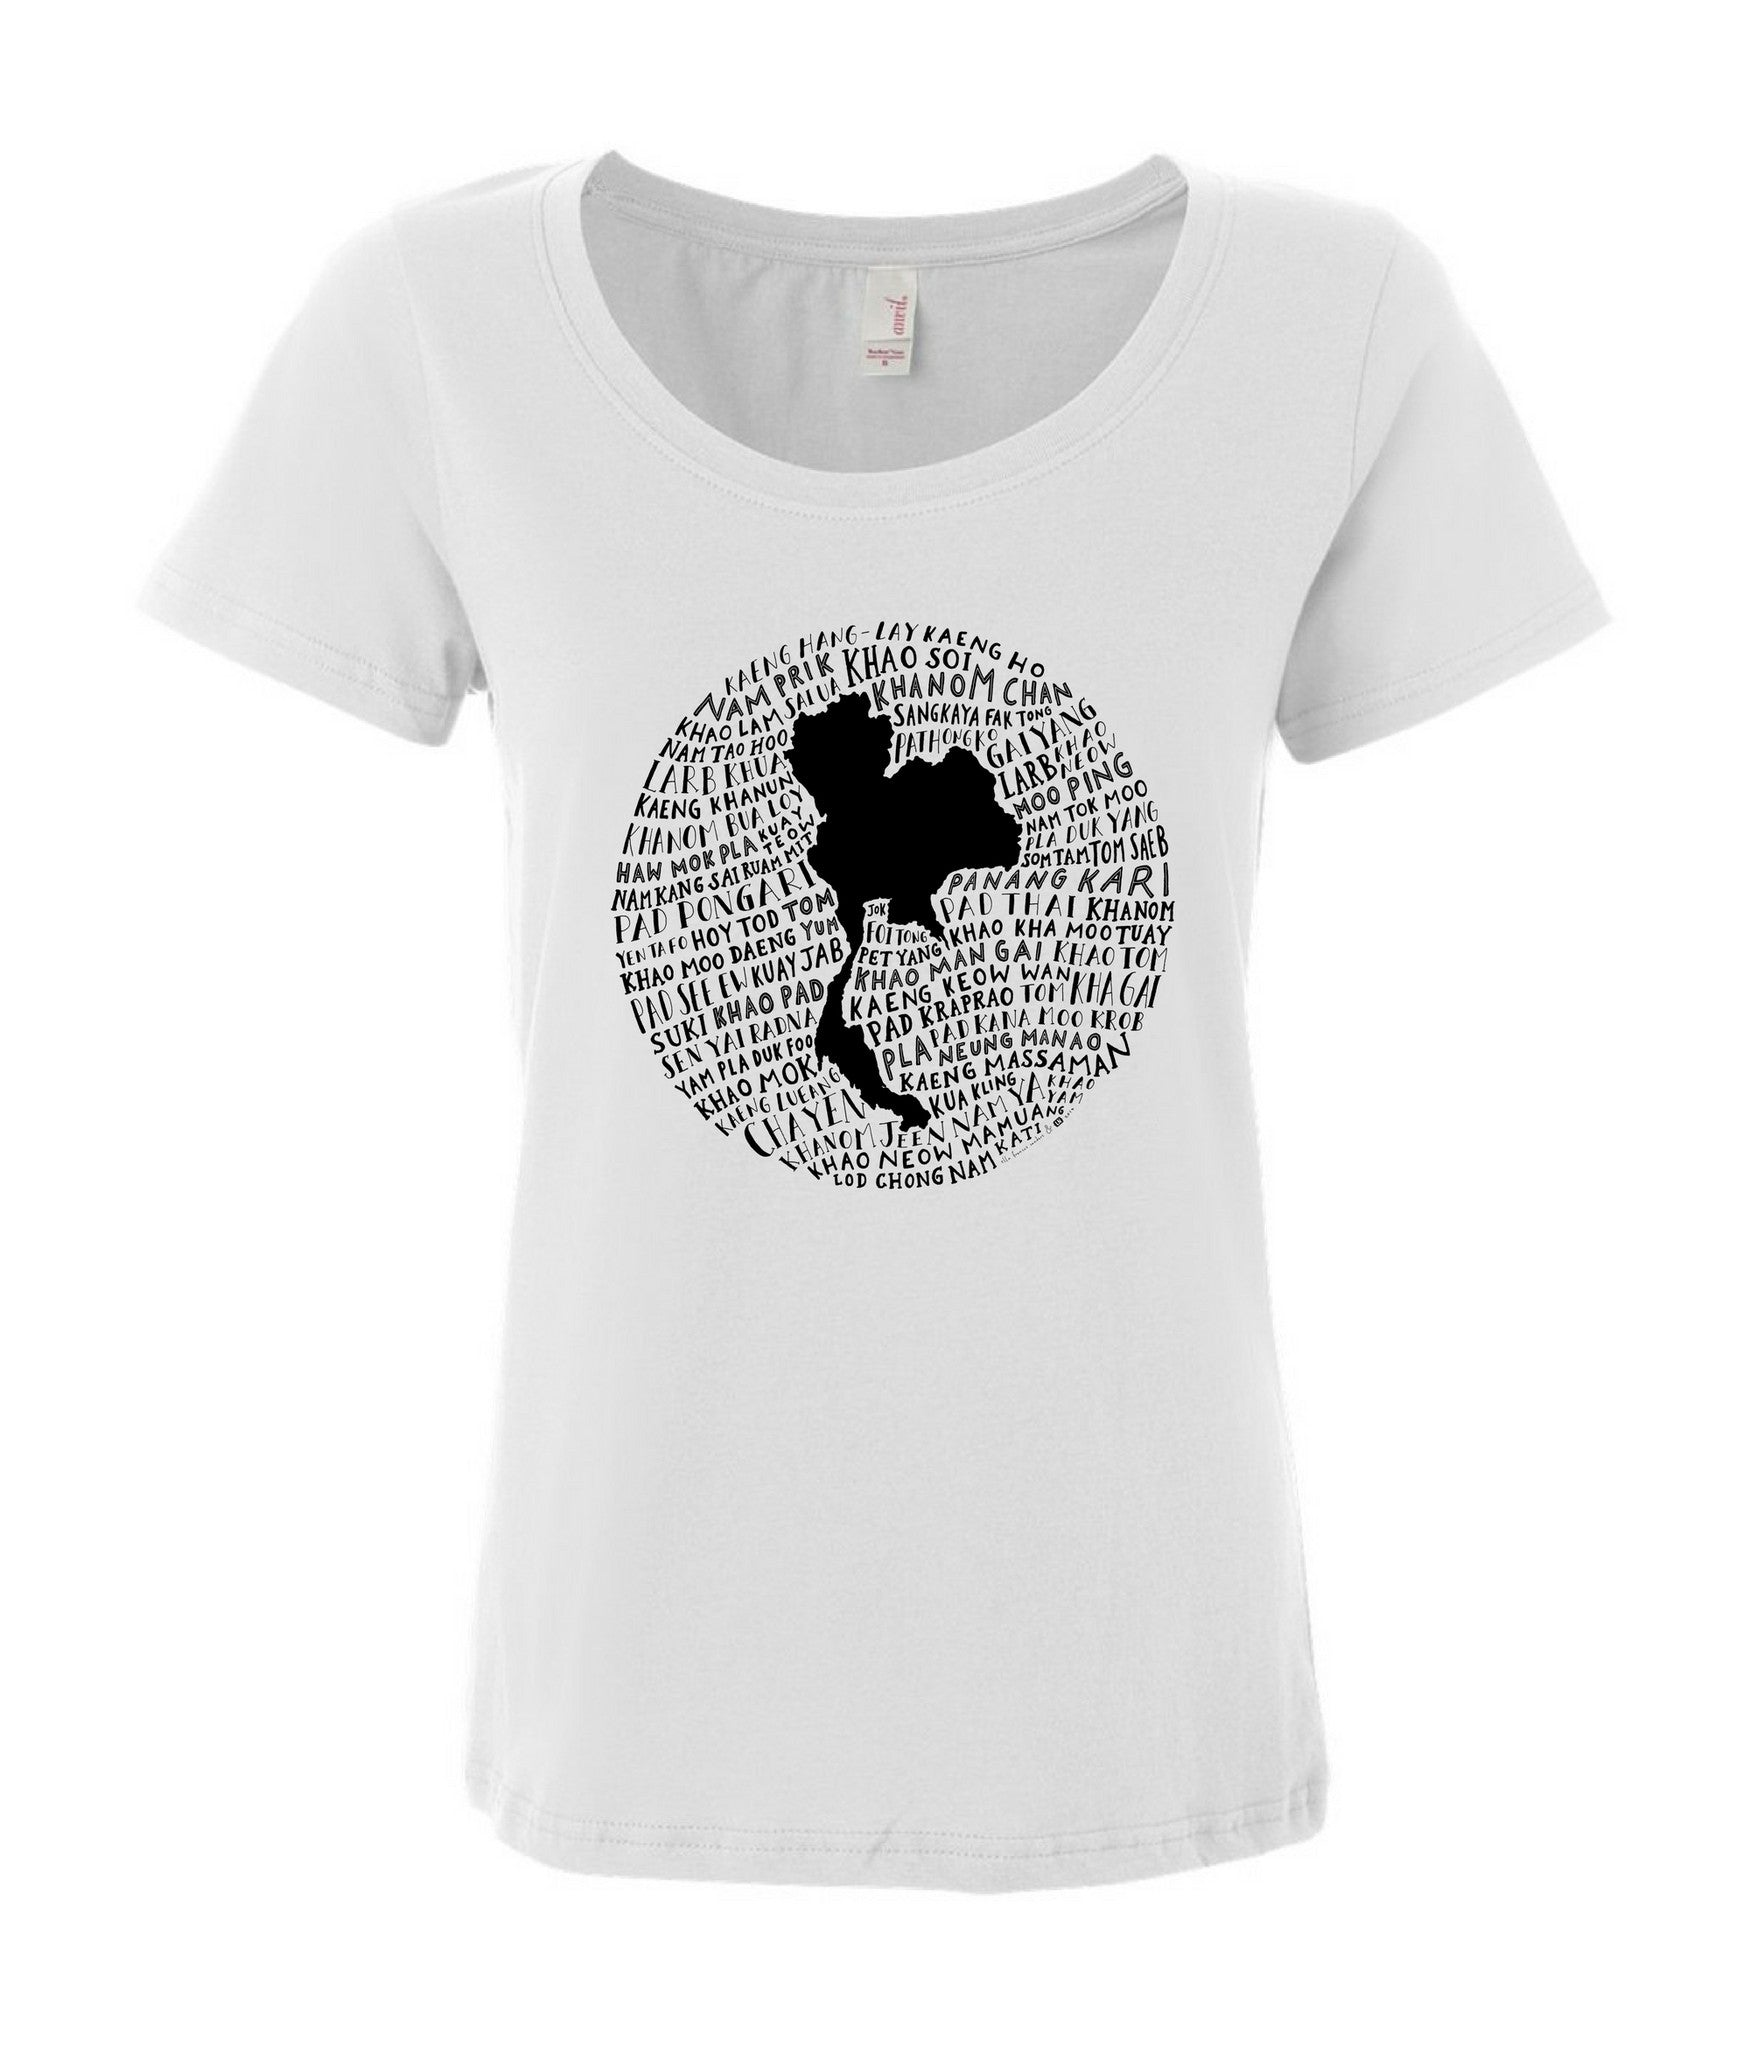 Food Map of Thailand - Women's White Scoop T-Shirt